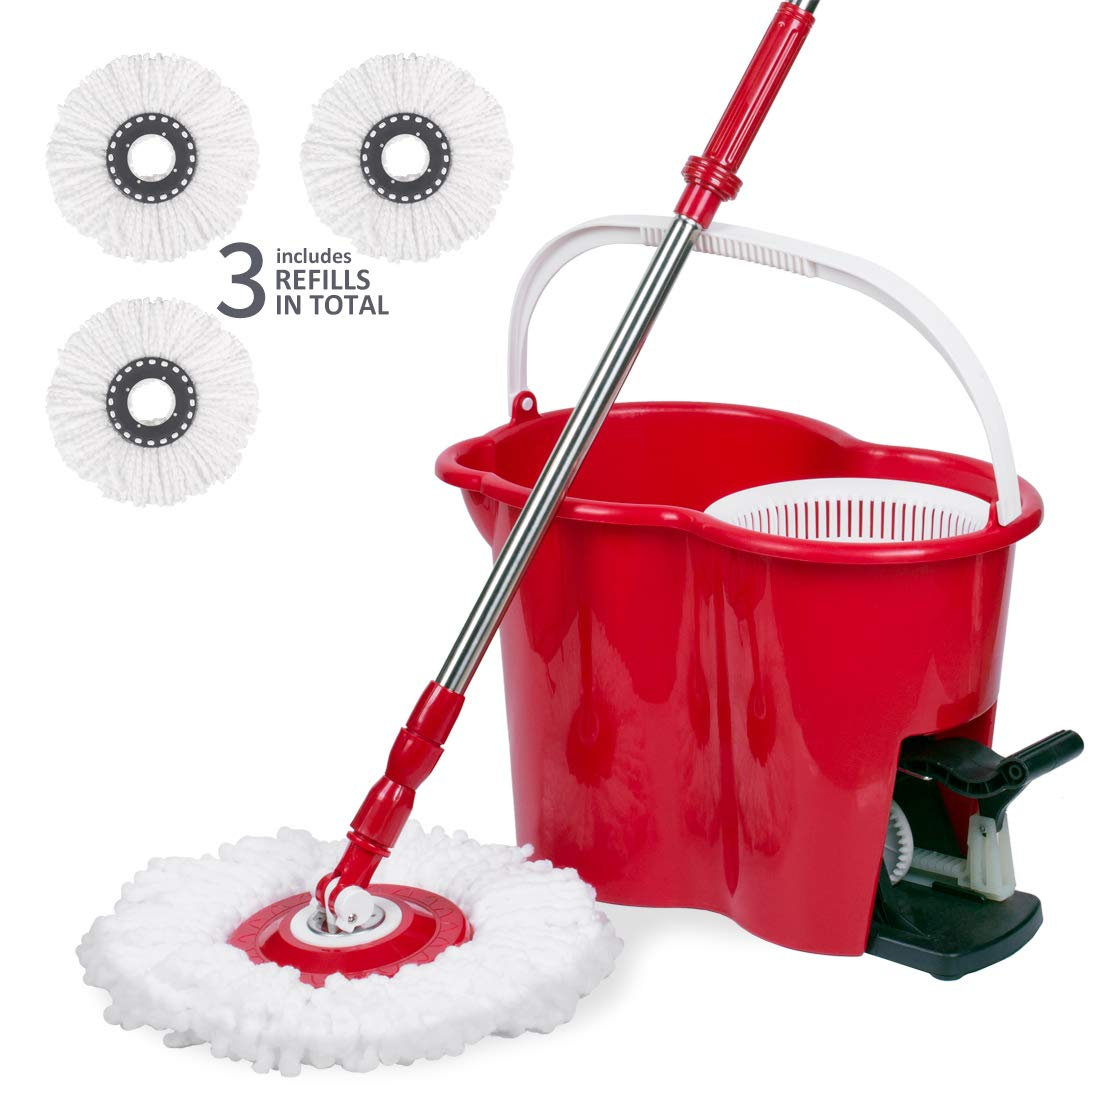 Spin mop with Bucket and Foot Pedal, Self Washing & Drying, 360° Spinning Mop Head for Easy Floor Cleaning, Thickened Sturdy Stable Bucket with Carry Handle, 3 Mop Heads Included, Red by Annaklin